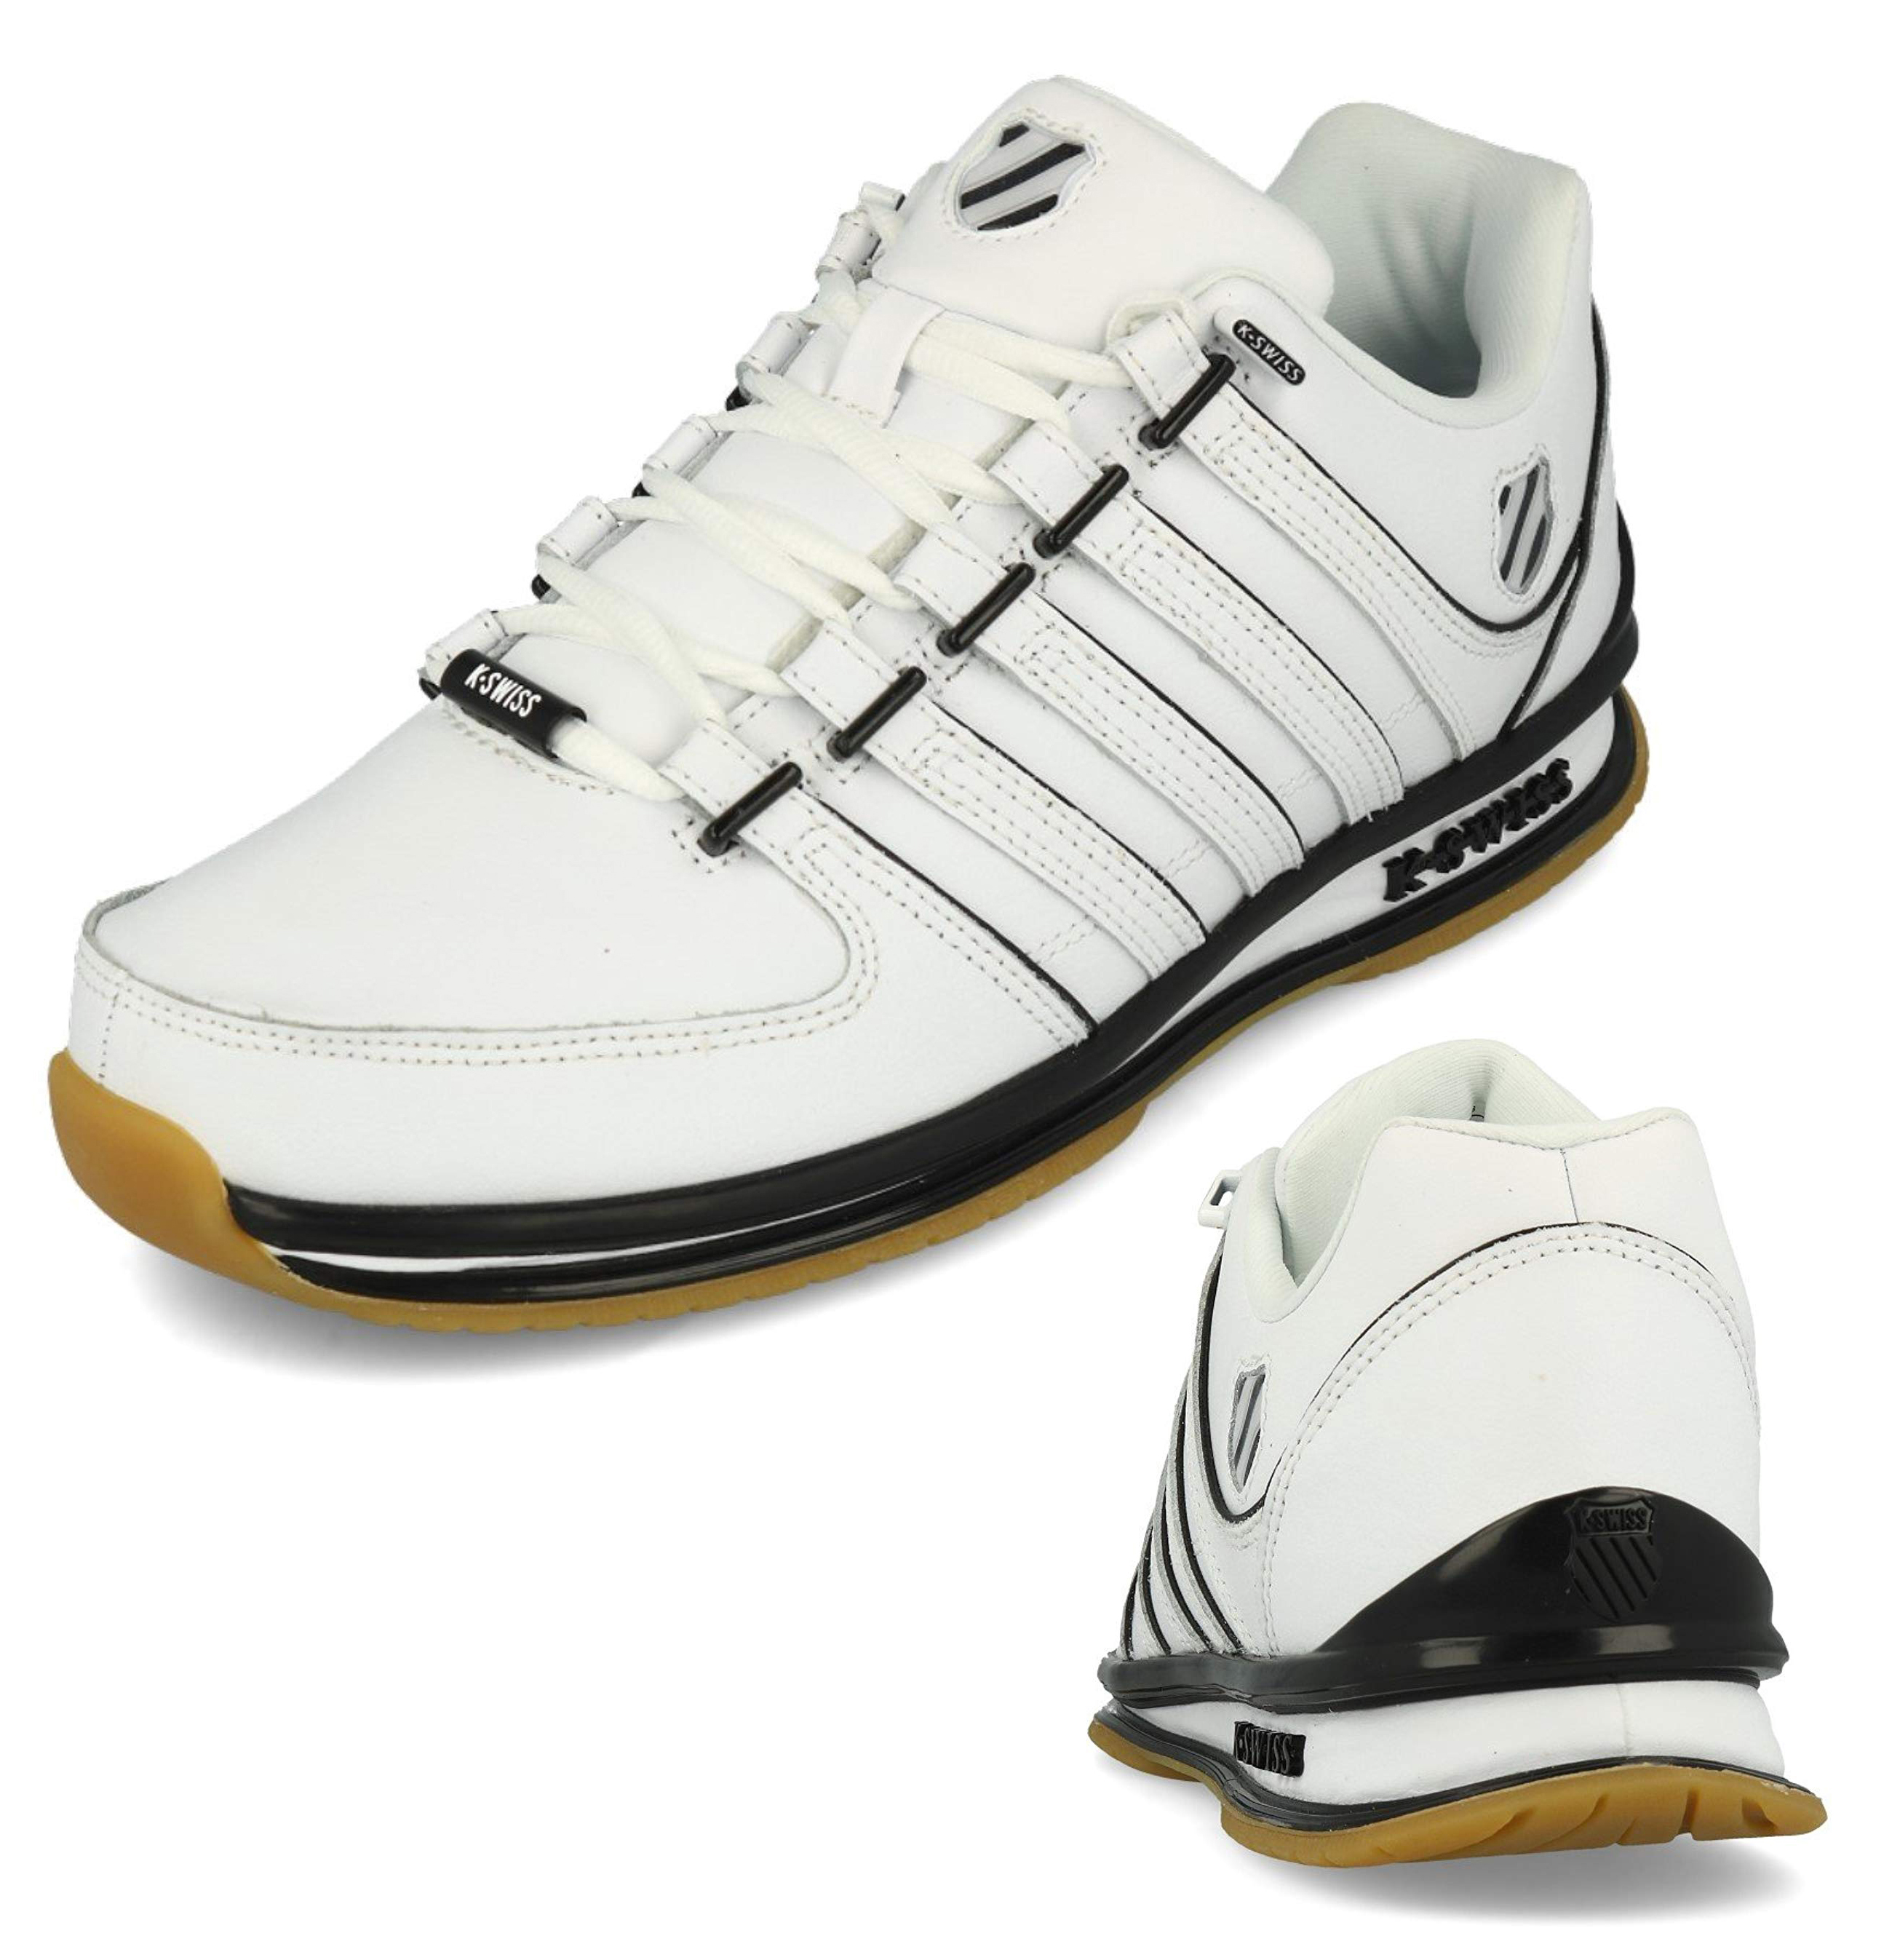 K-Swiss Rinzler SP Leather Trainers Mens Fashion Tennis Court Shoes ... 95824953e